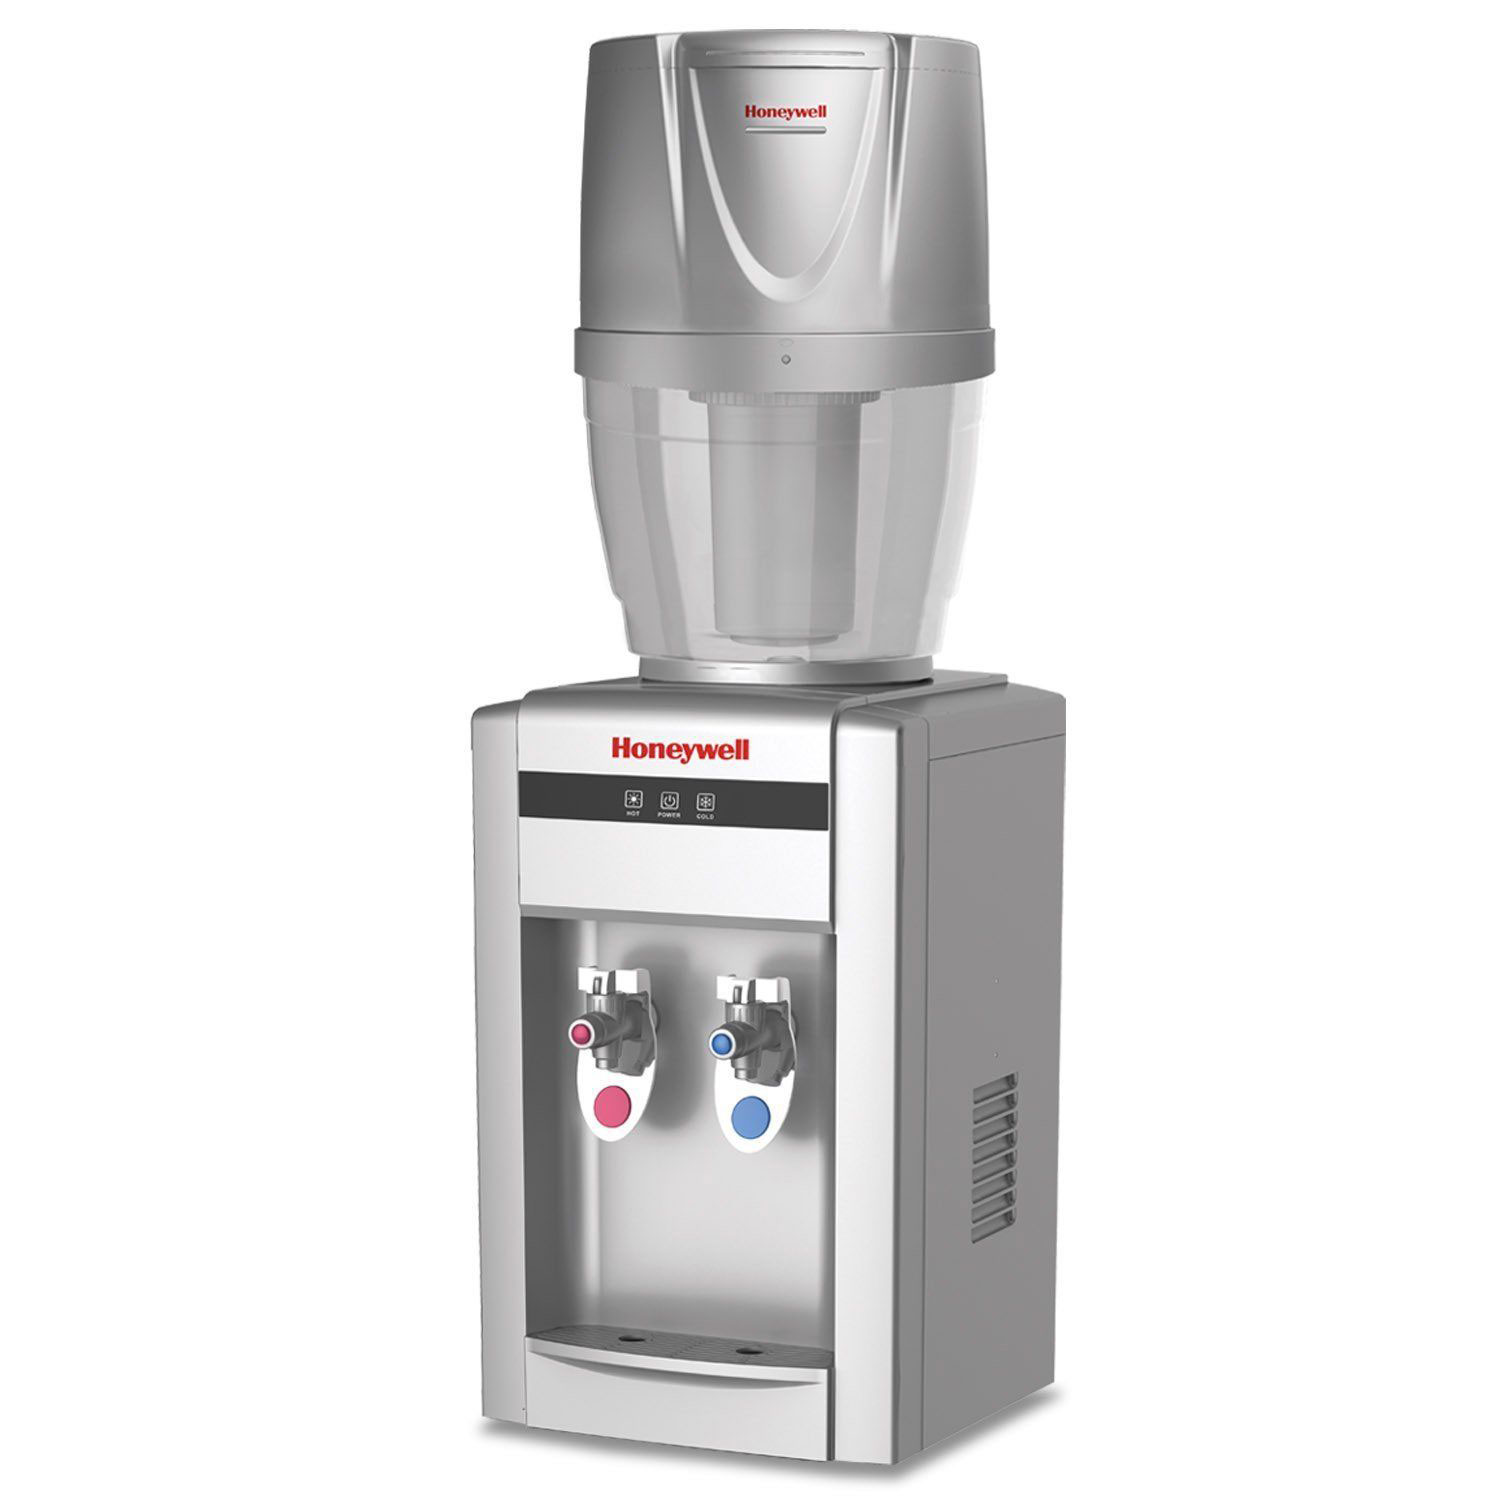 Honeywell hwb2052s hwb101 tabletop water cooler with for Water fountain filtration system